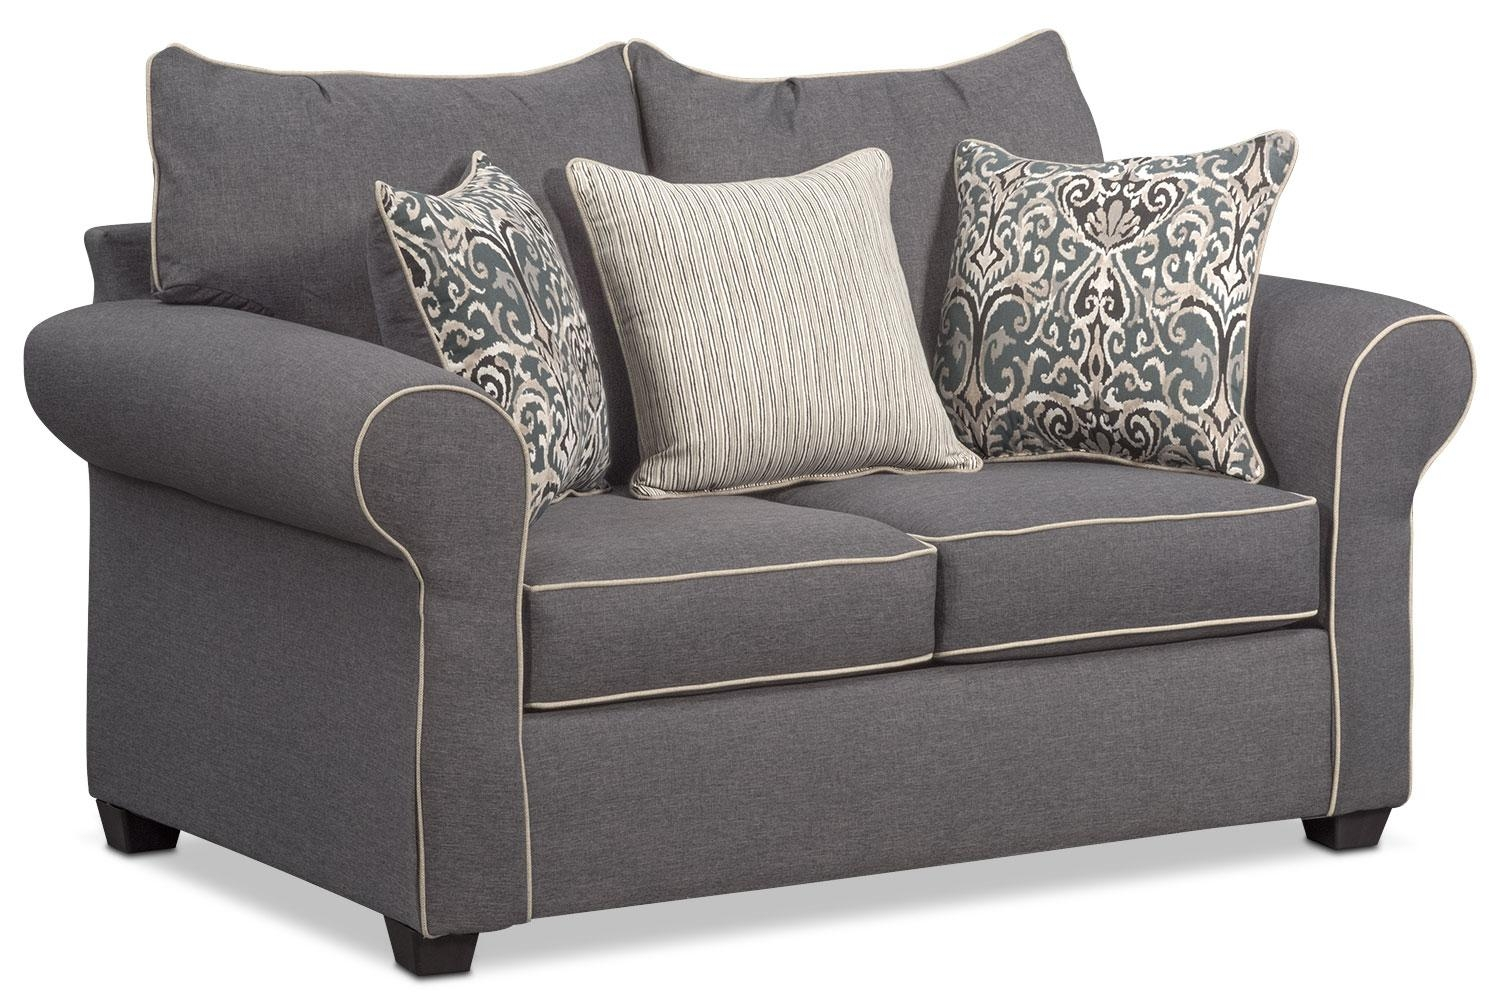 Carla Sofa, Loveseat, And Chair Set – Gray | Value City Furniture Throughout Sofa Loveseat And Chair Set (Image 6 of 20)